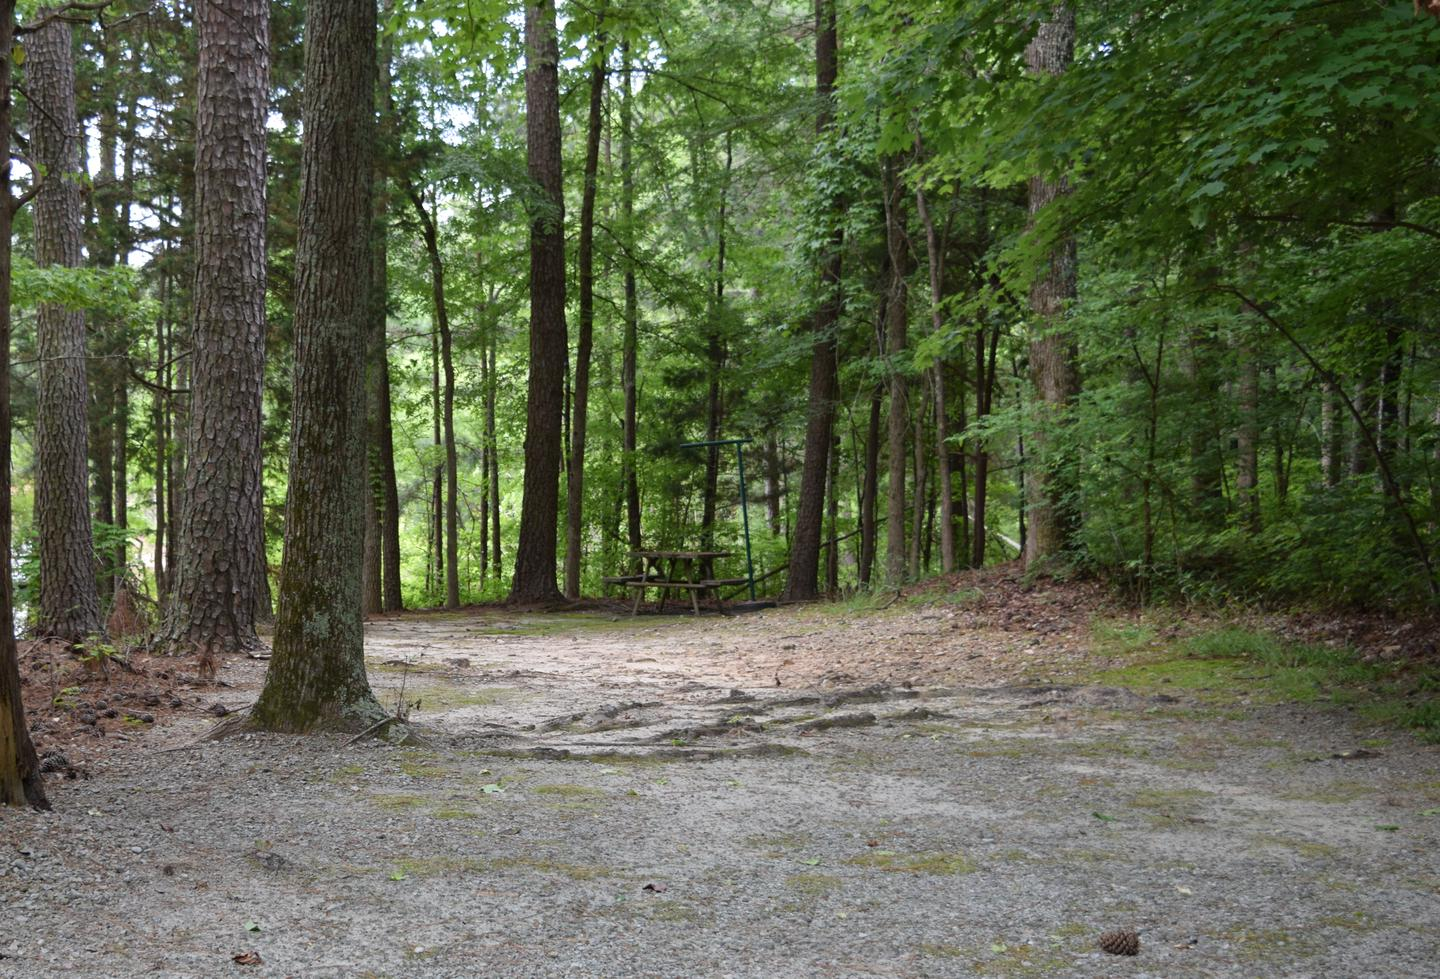 Piney Woods CampsiteWelcome to Piney Woods Group Camping Area! This is a picture of one of the campsites within Piney Woods Group Camping Area. These campsites are designed for tent campers. Some of these campsites have campsite posts with them while others do not. Not all campsites are gravel; some of them are more dirt.